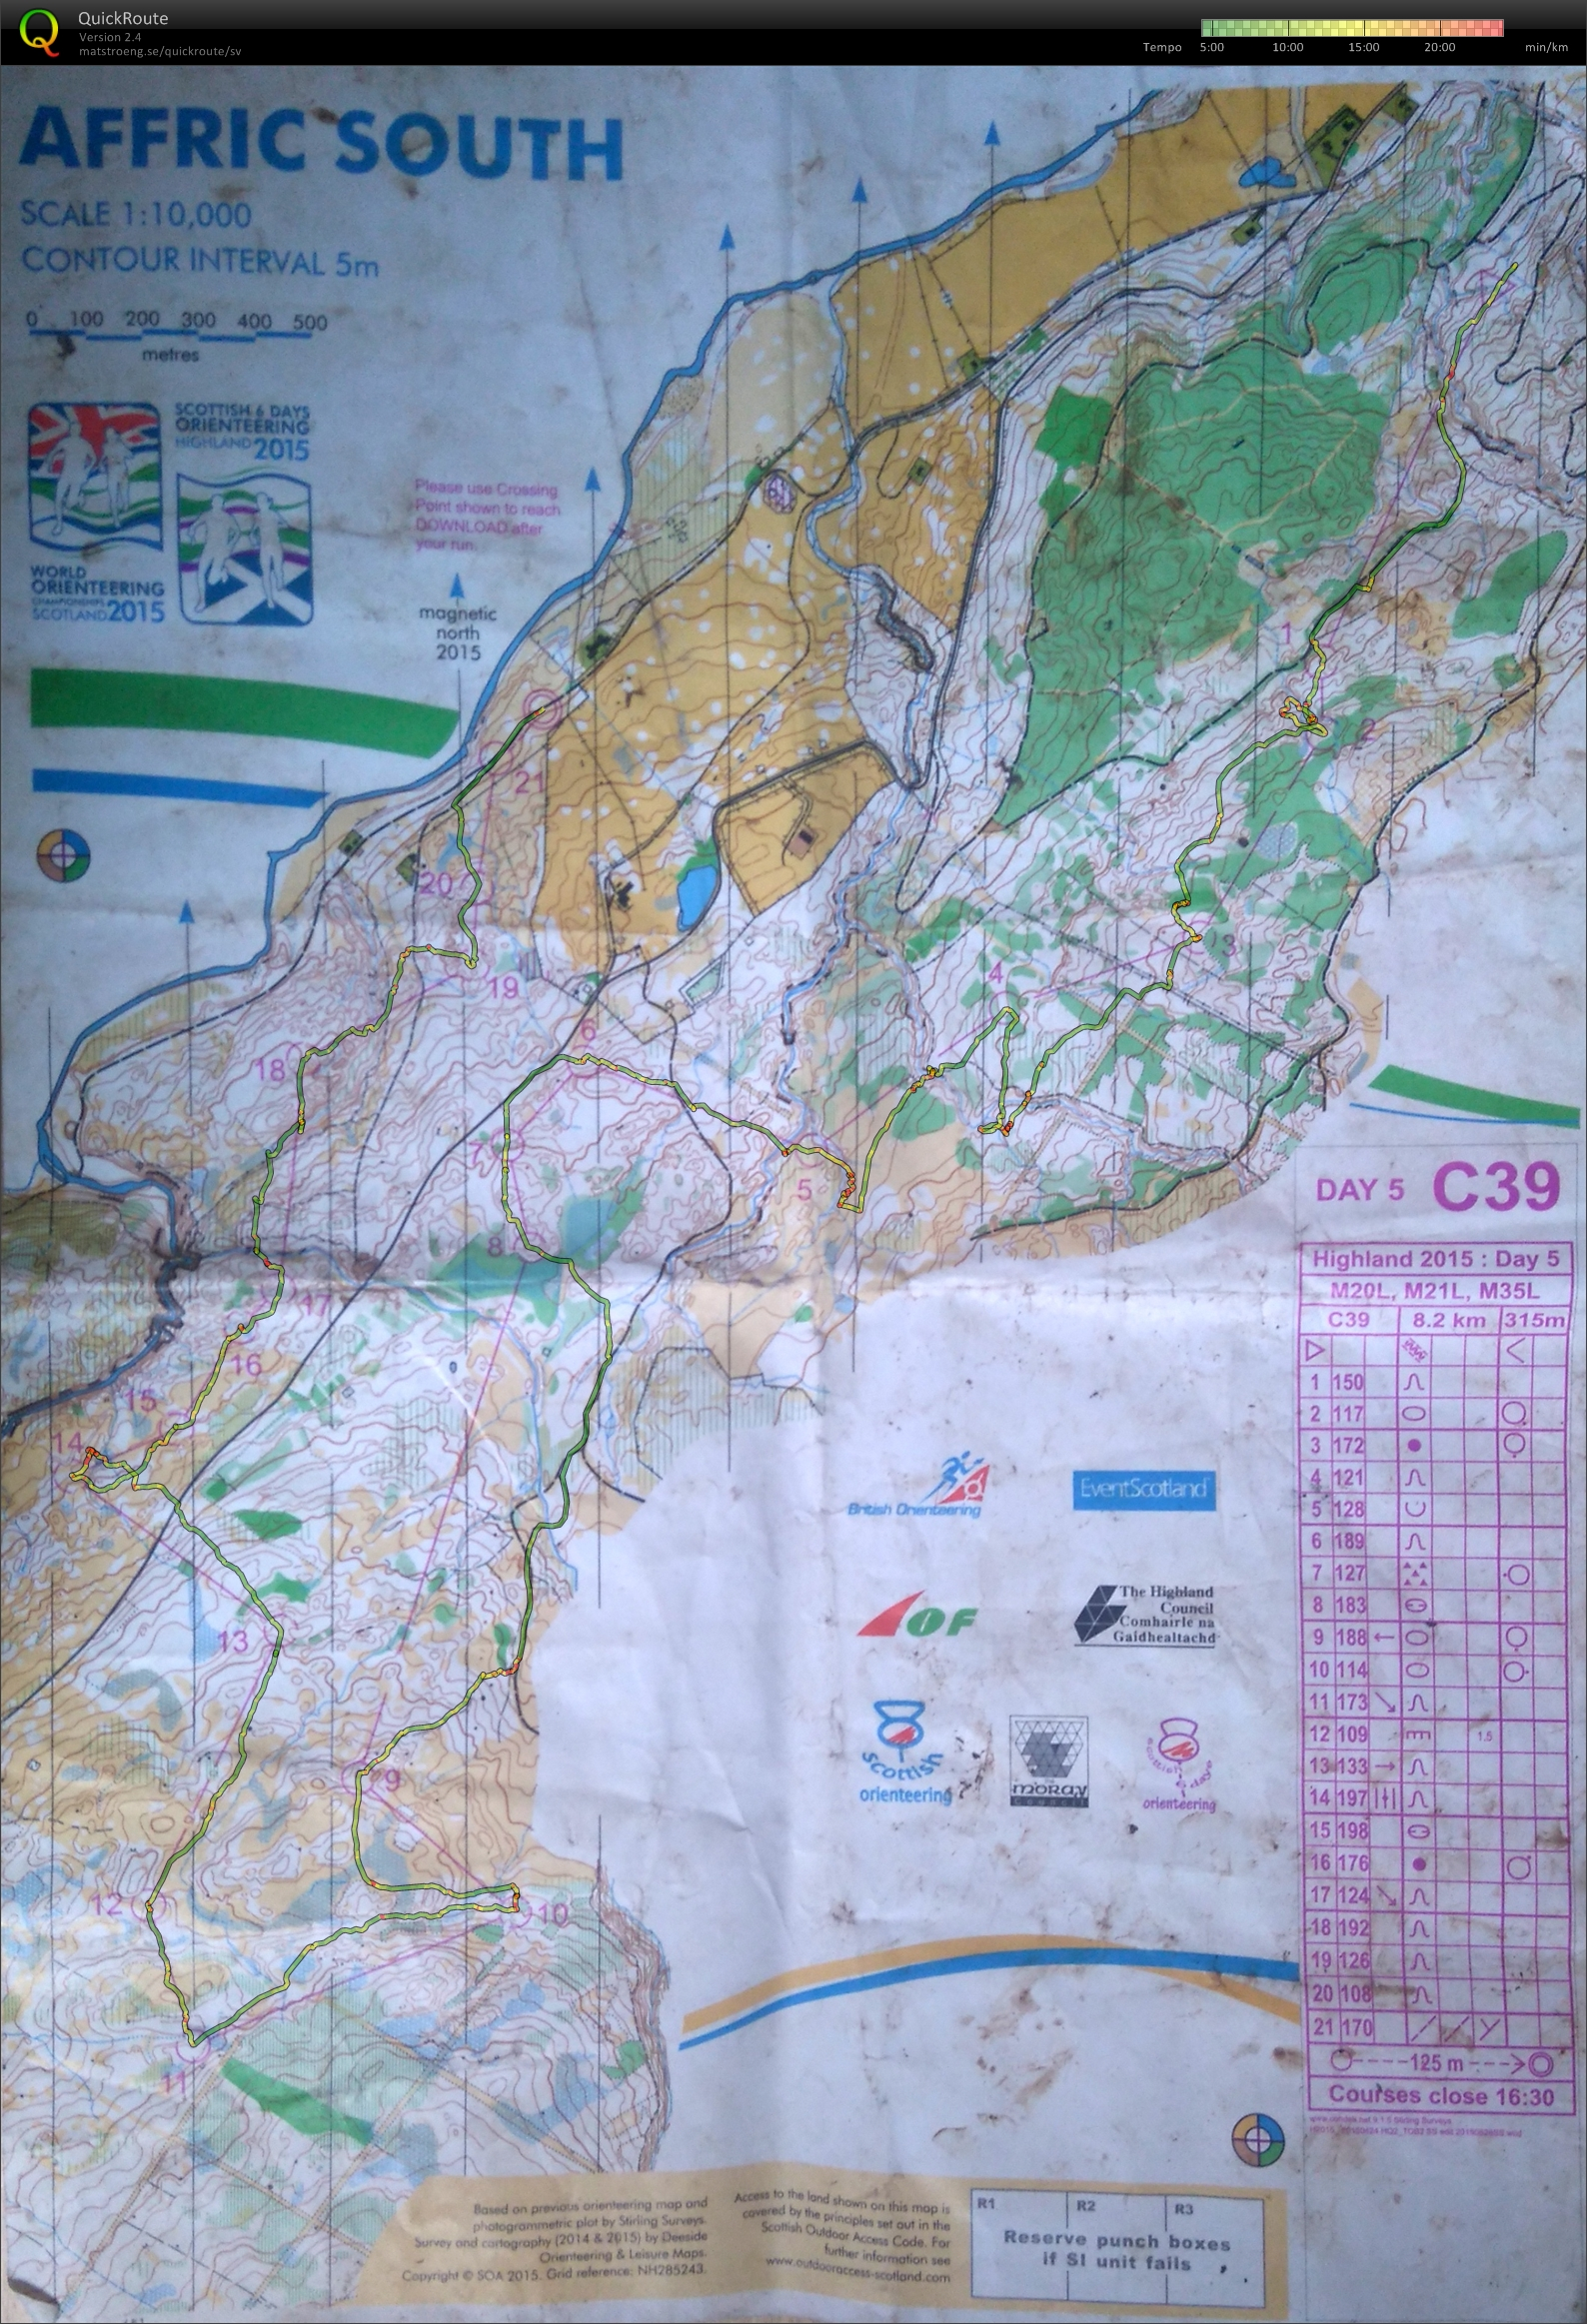 Scottish 6-Days 2015 E5 (M21L) (2015-08-07)